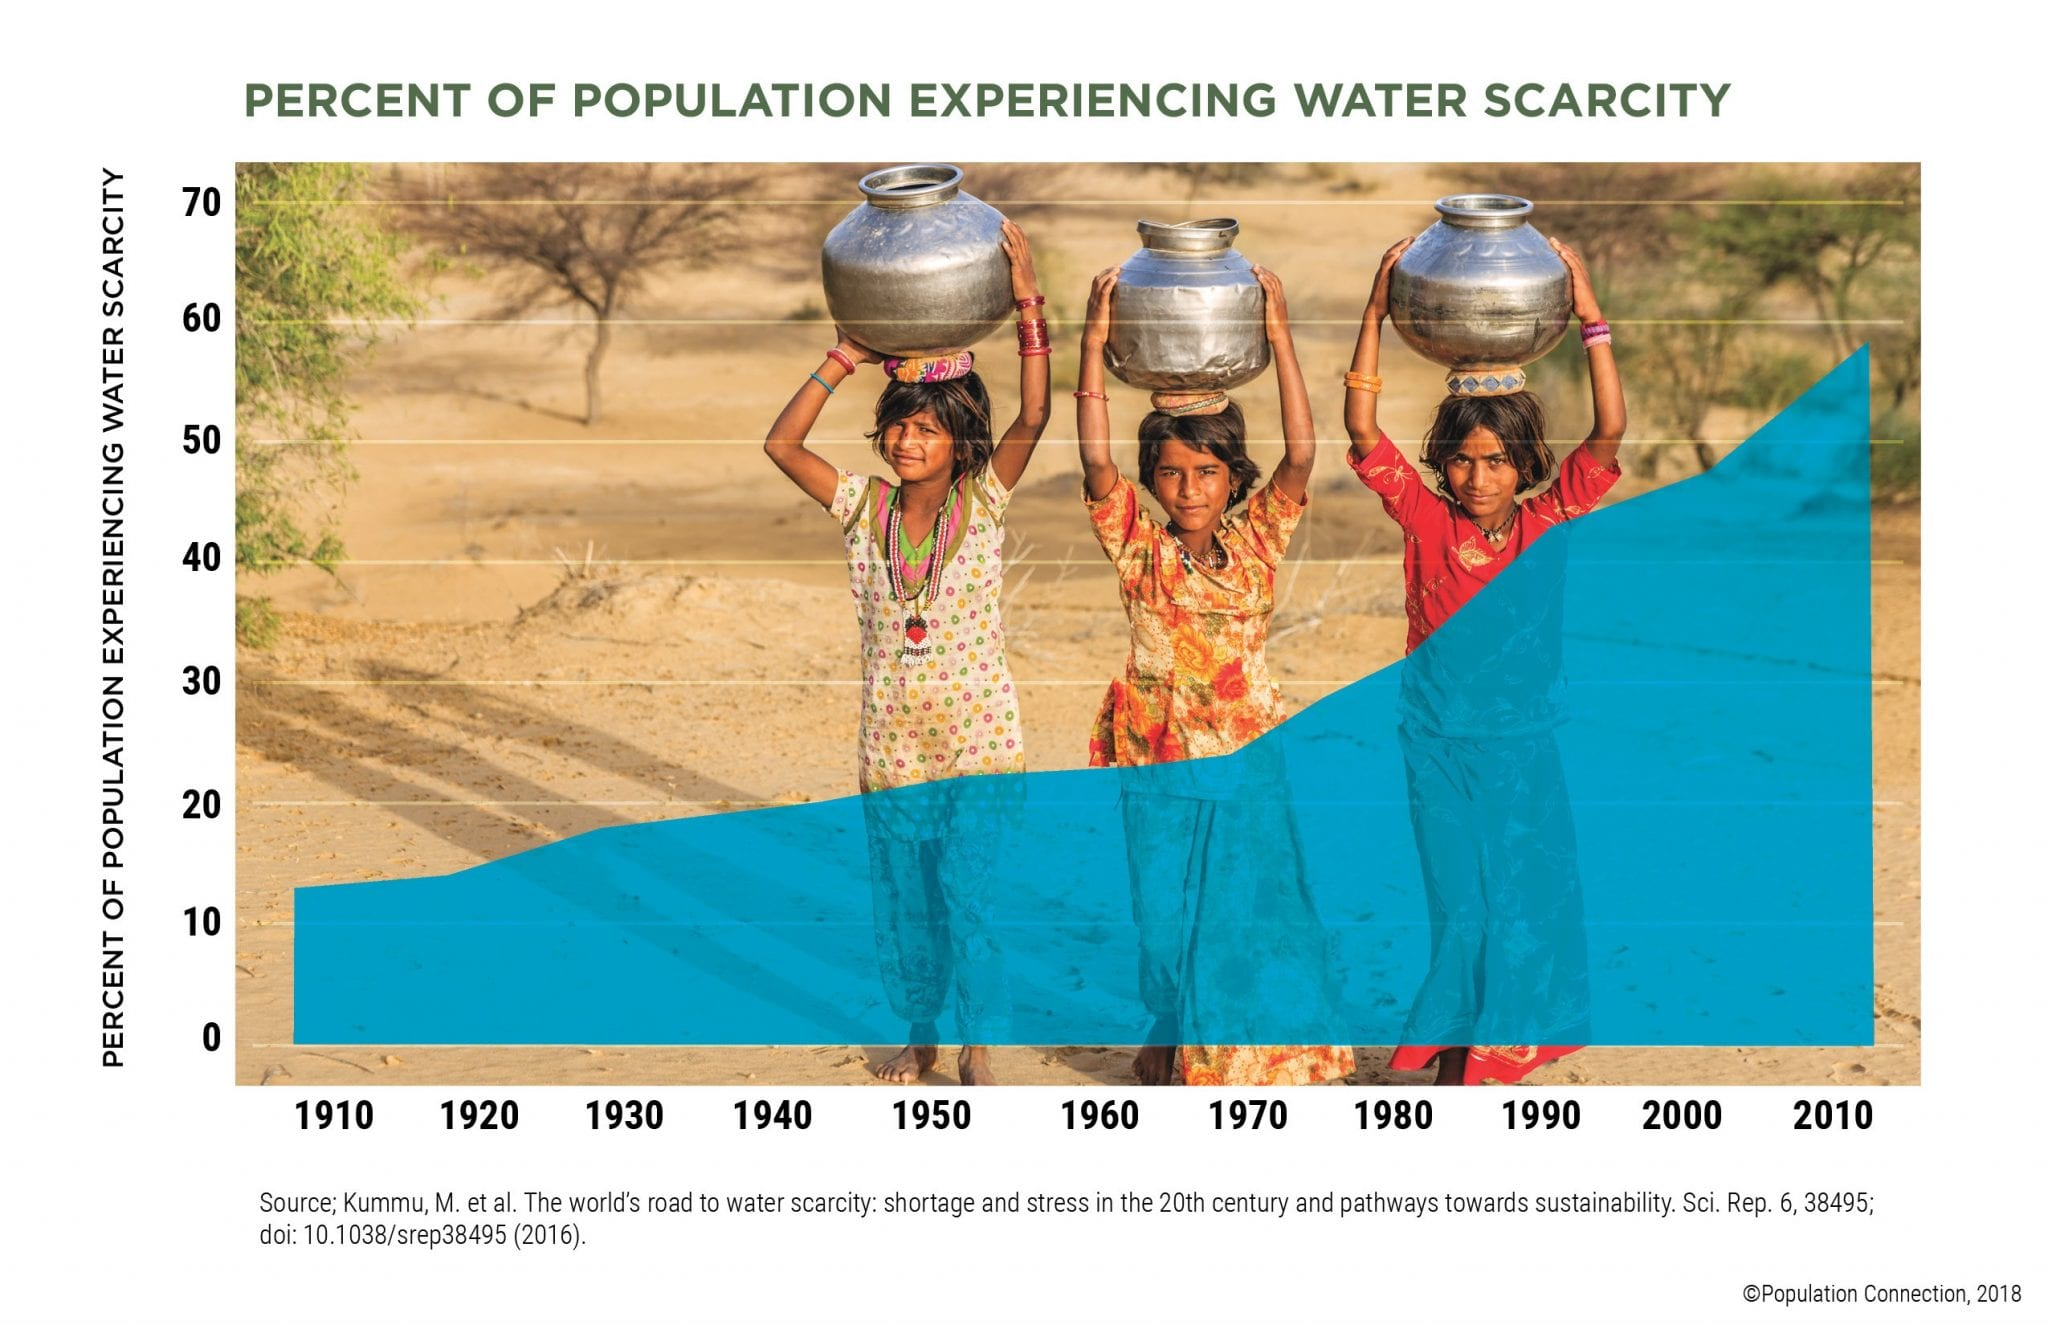 Graph of percentage of global population experiencing water scarcity over time